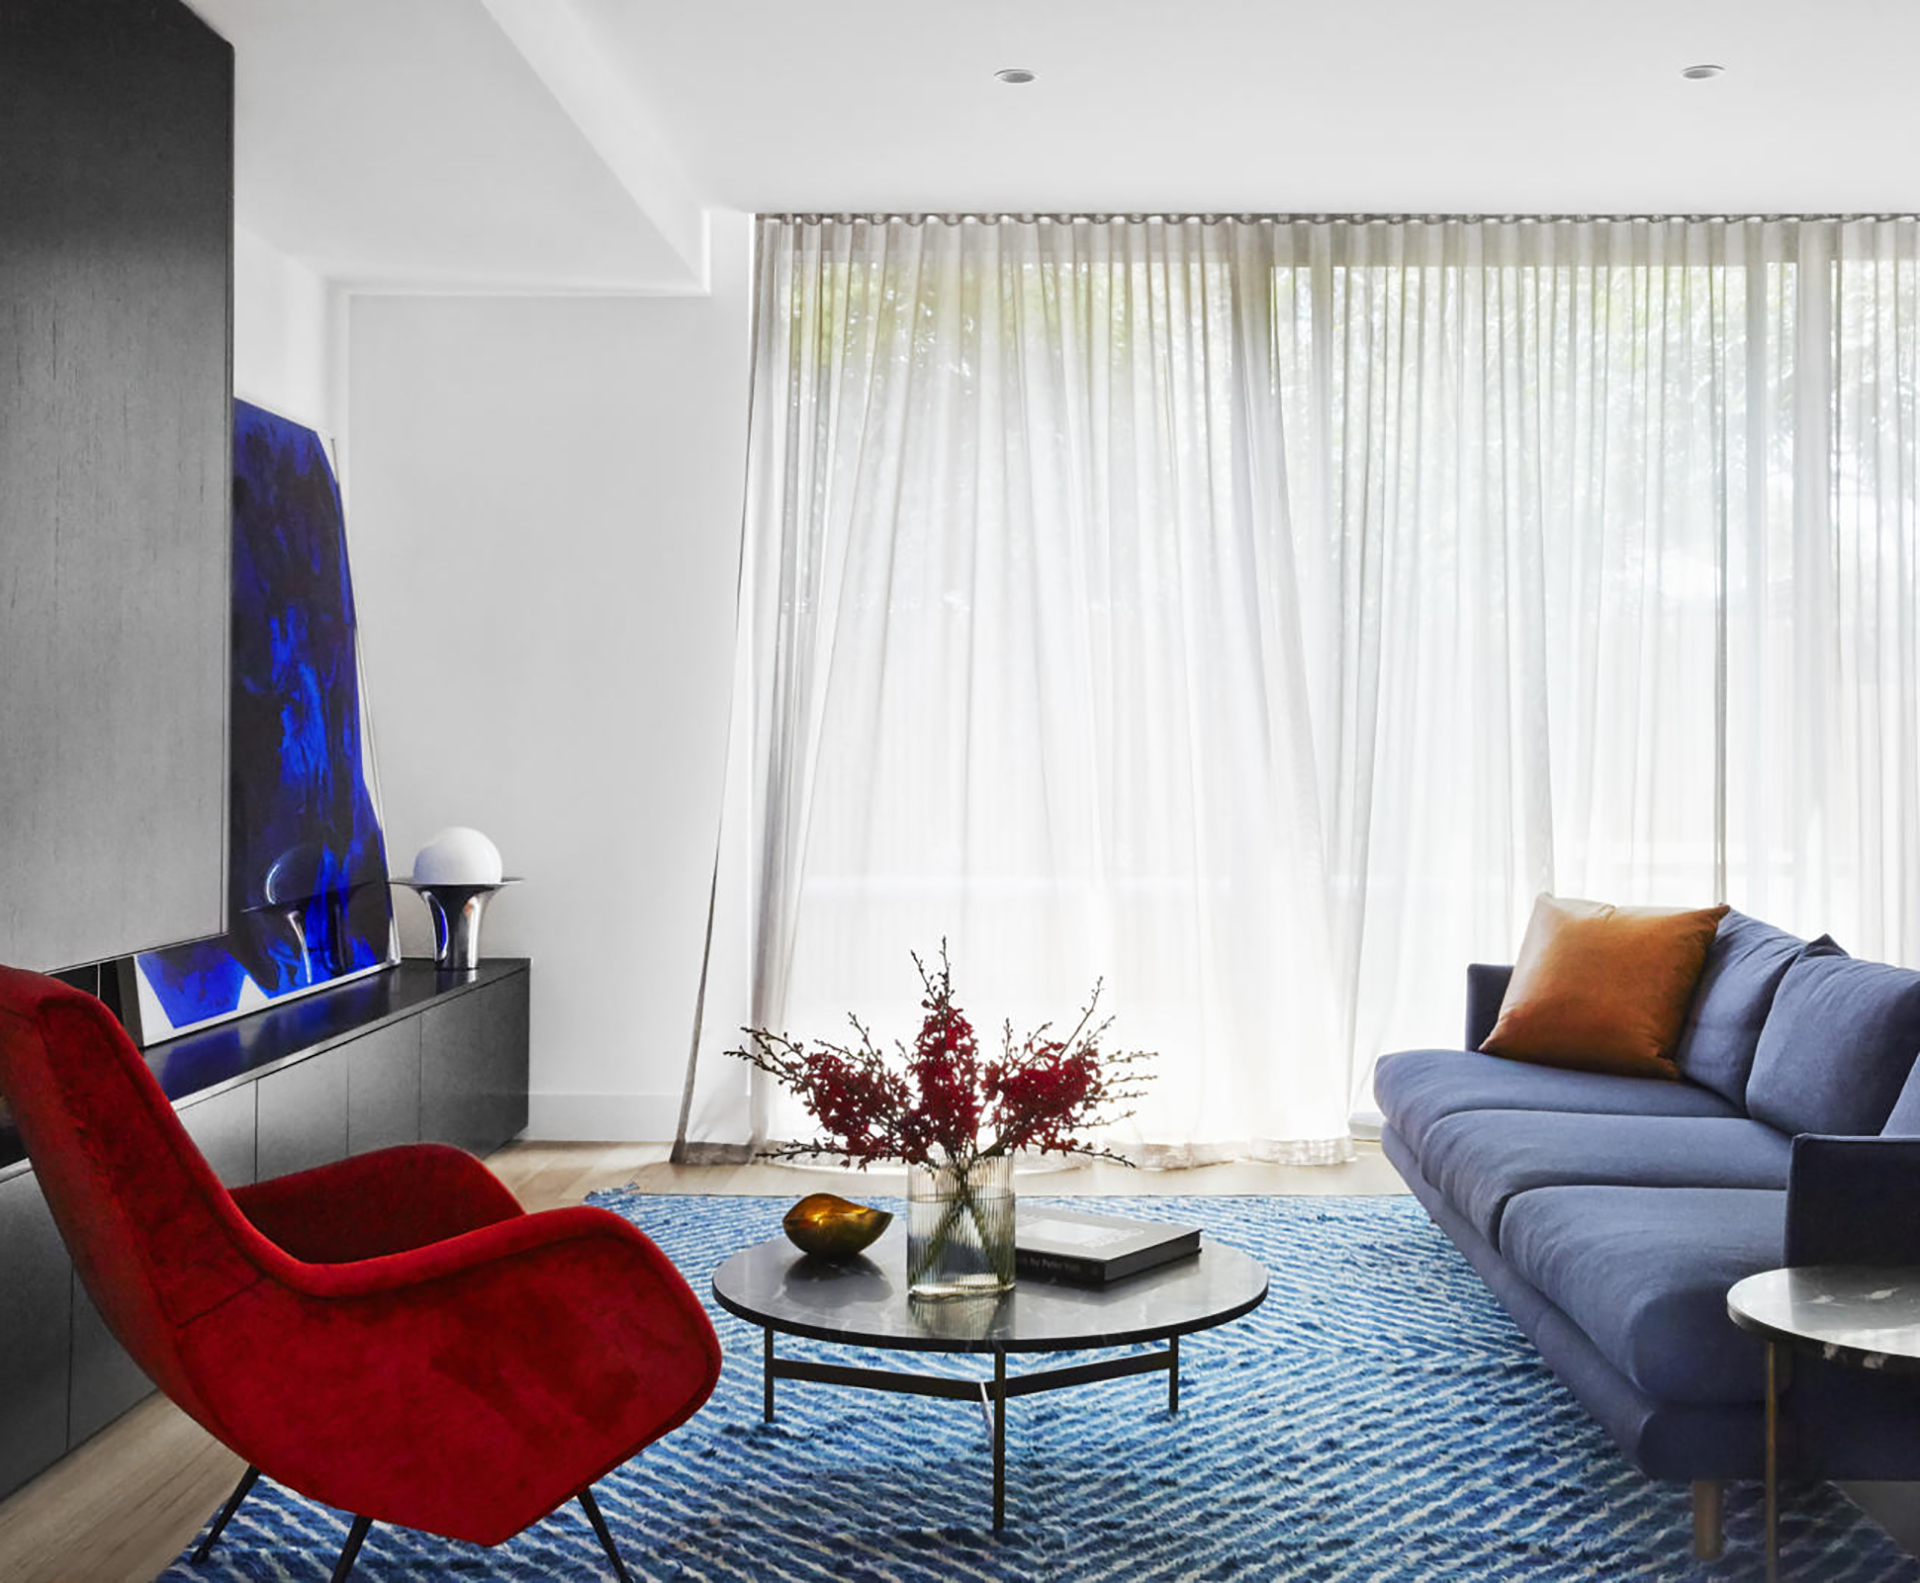 A high-end pad in South Yarra